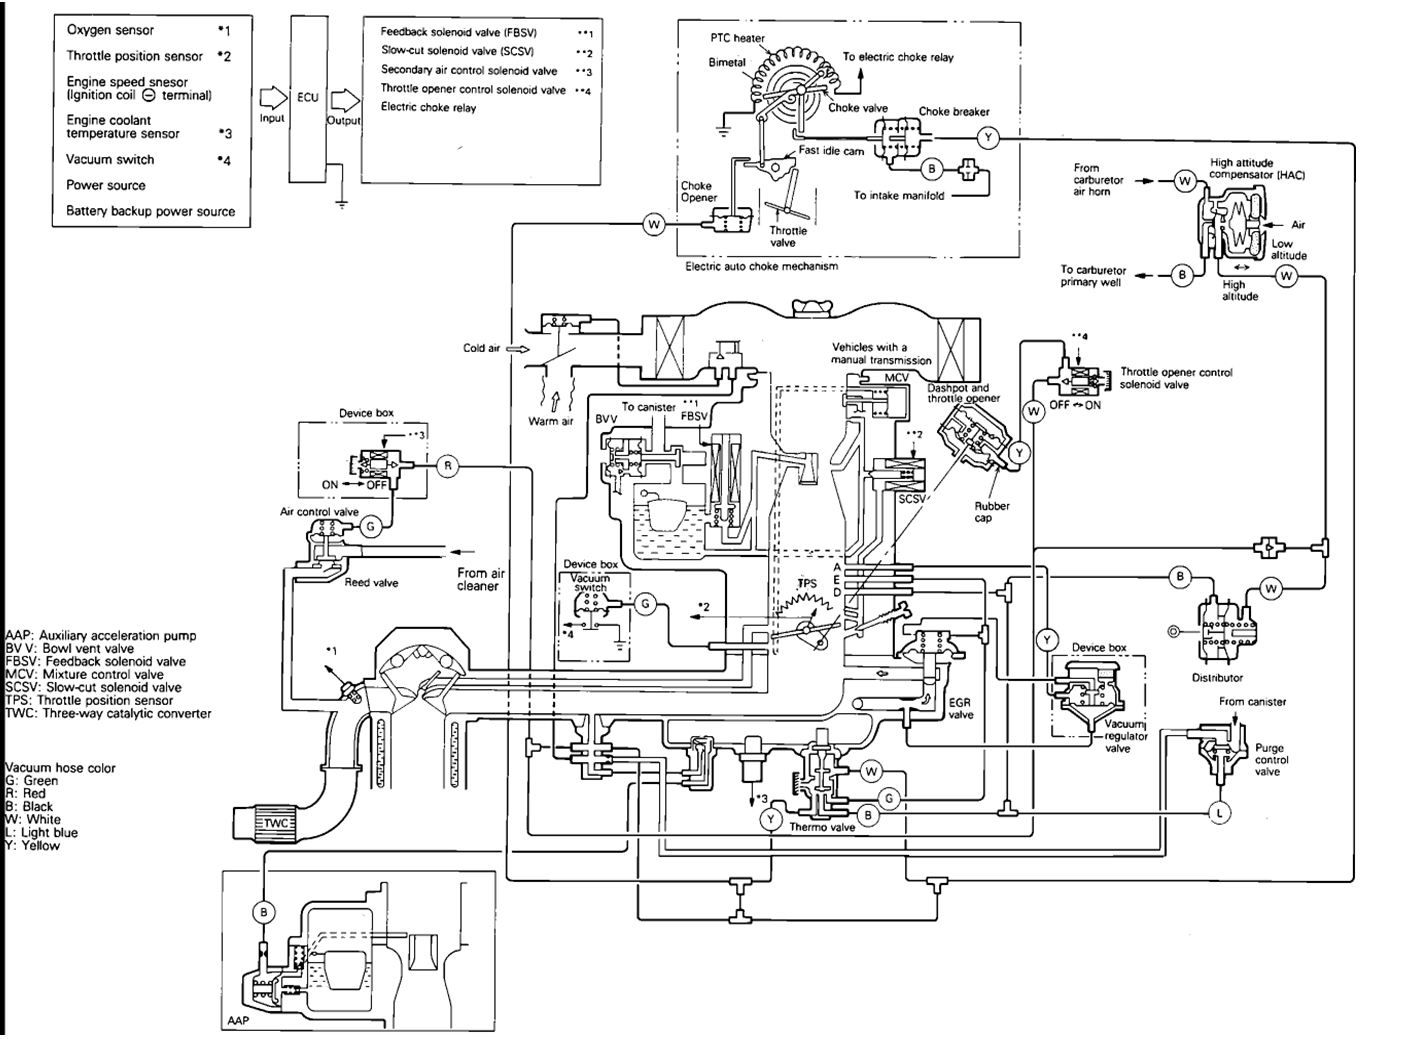 9a474a0c15126d984745b8555dee2d9c 2012 10 12_213147_capture jpg auto mighty mack 1988 pinterest 1990 mitsubishi mighty max stereo wiring diagram at webbmarketing.co